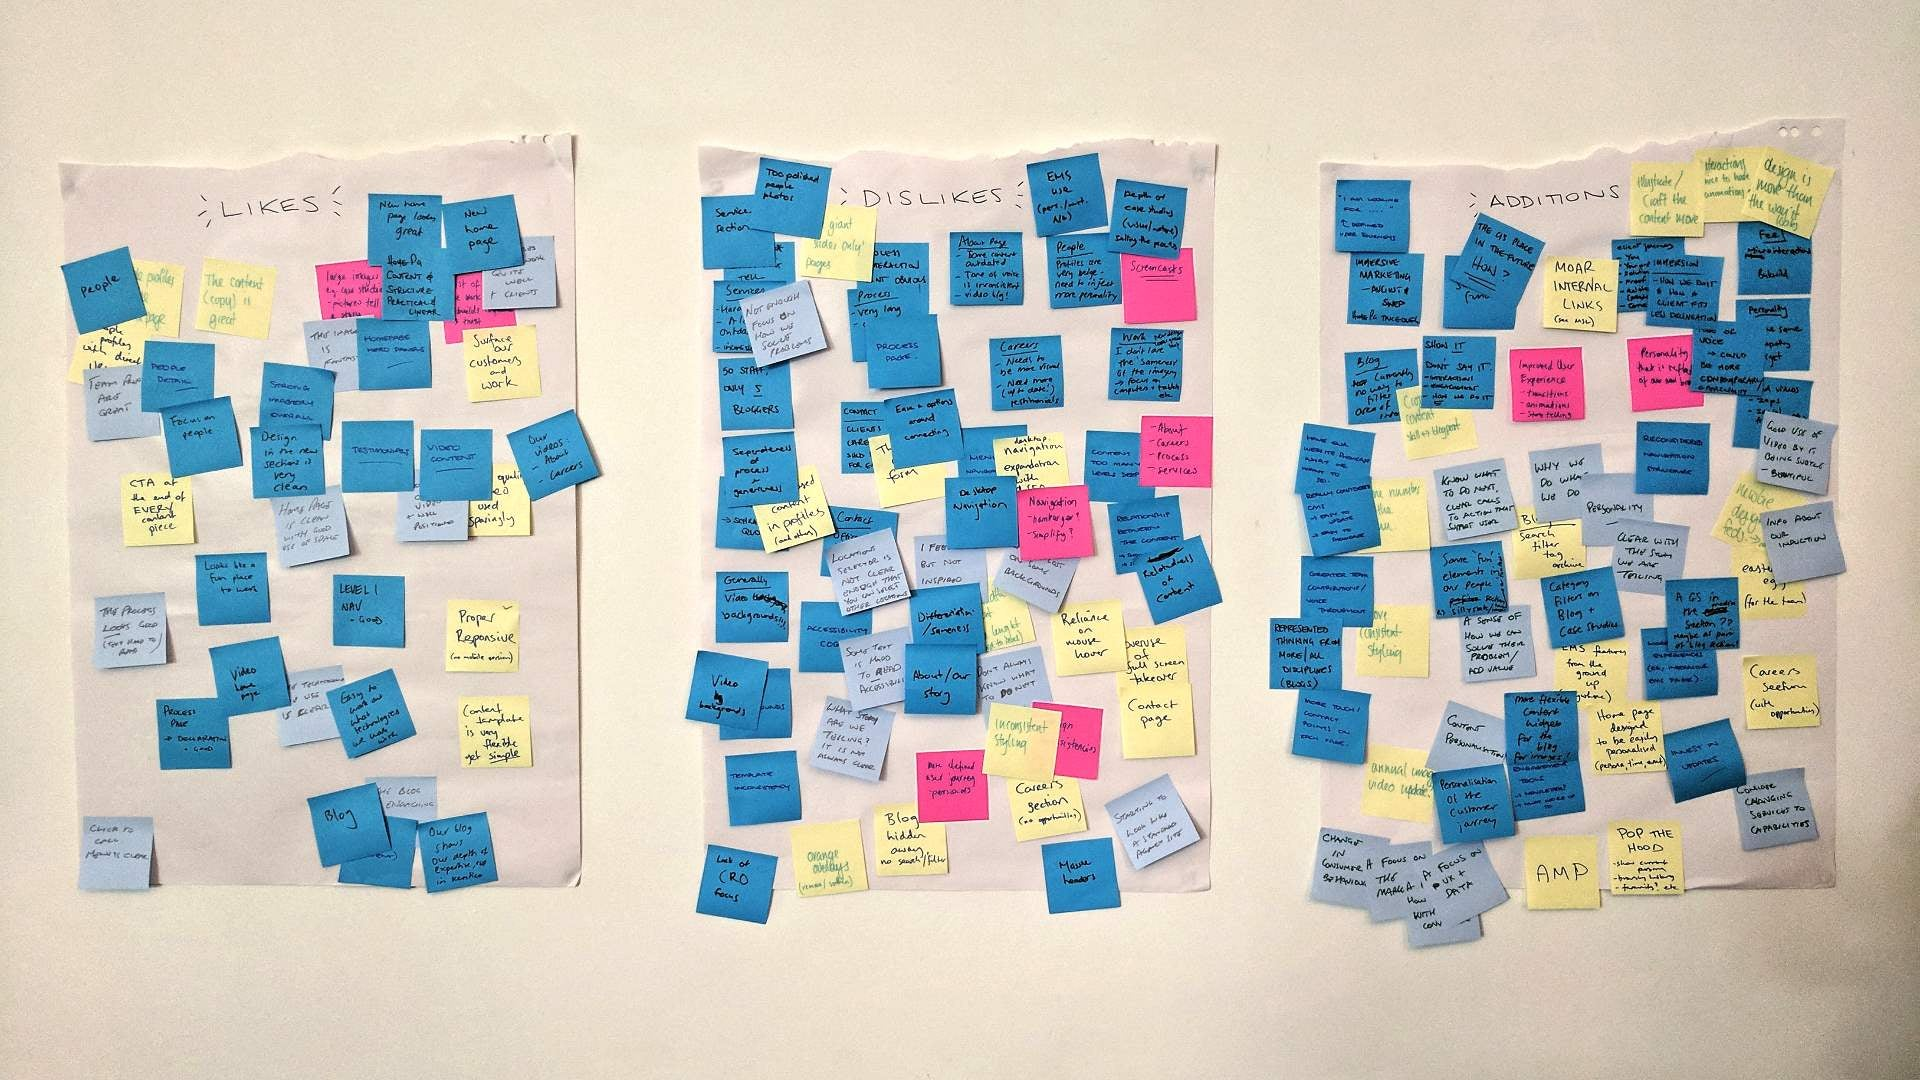 Post-it notes on a workshop wall